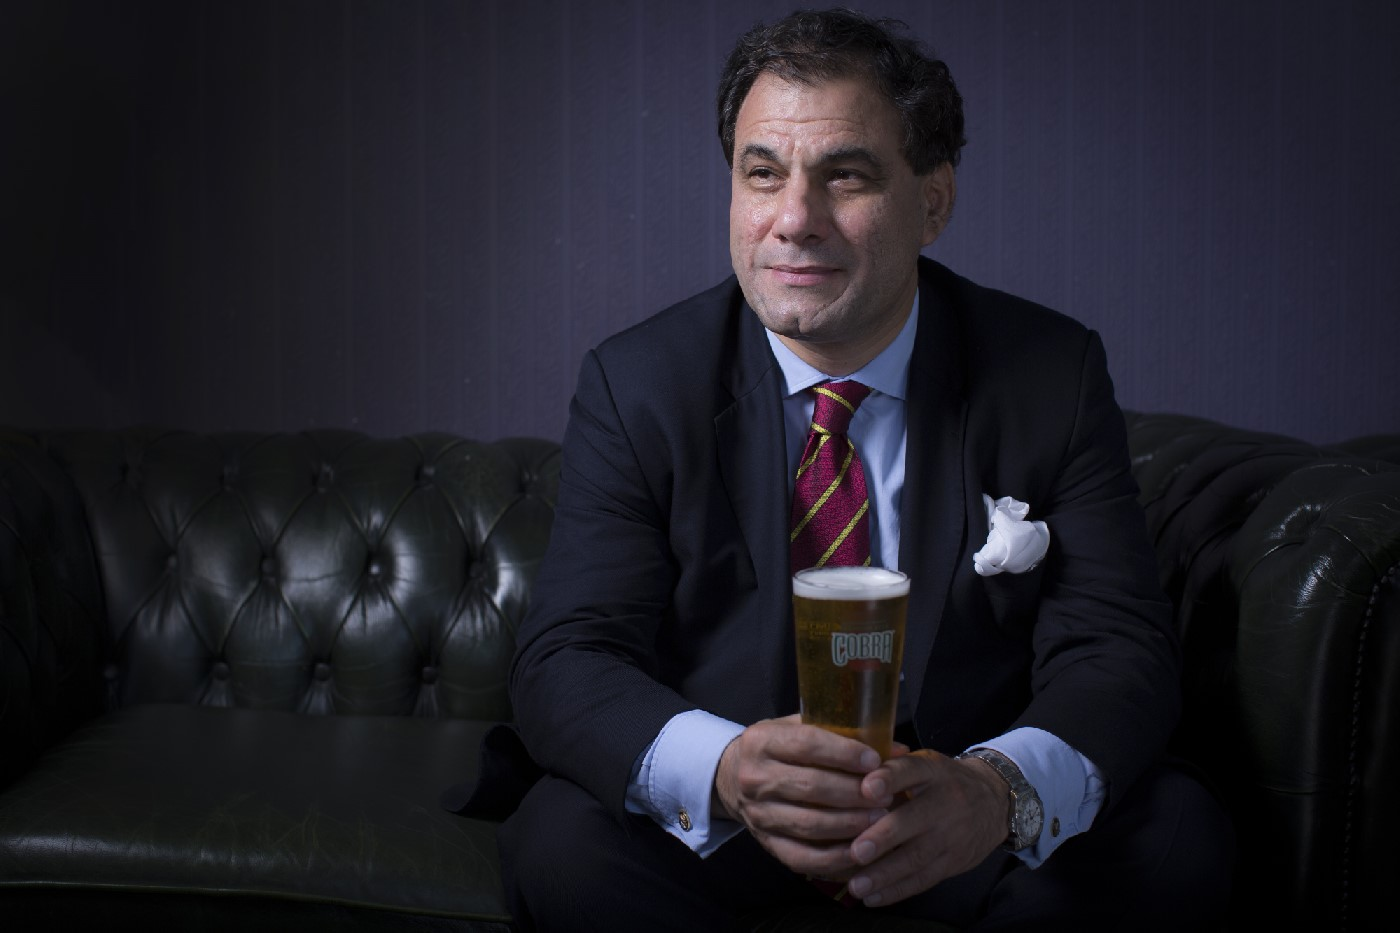 Lord Bilimoria, founder of Cobra Beer